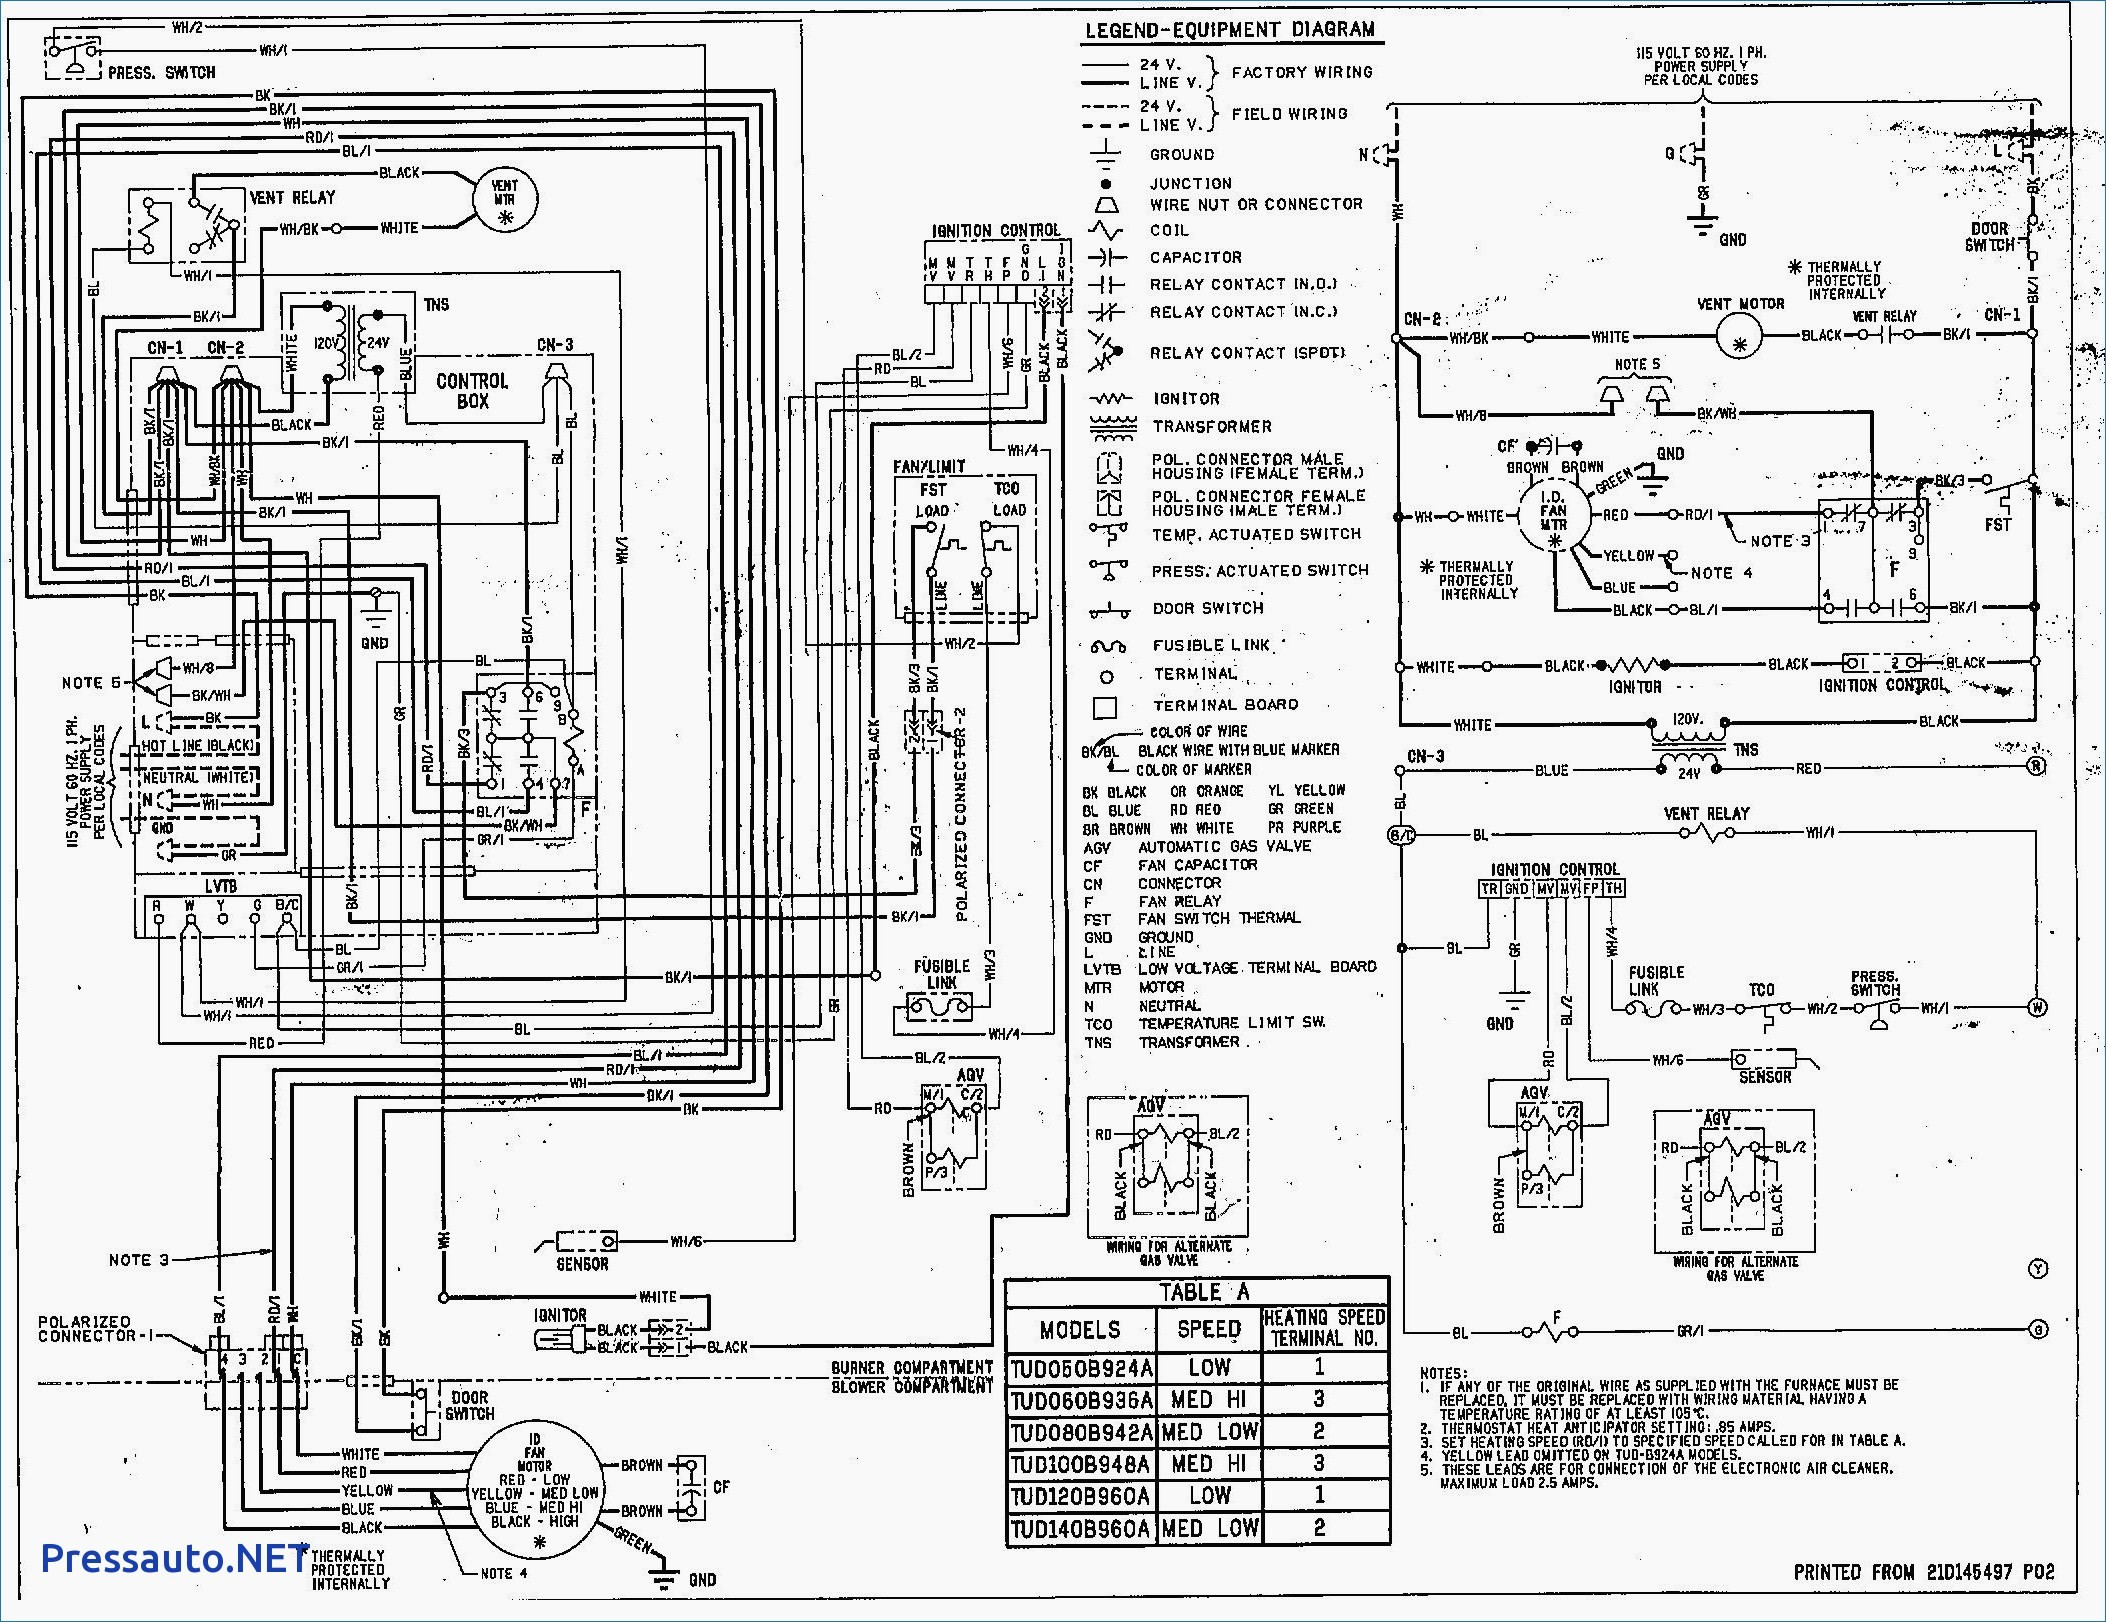 Oil Furnace Wiring Diagram Oil Furnace Wiring Diagram Lorestanfo Of Oil Furnace Wiring Diagram